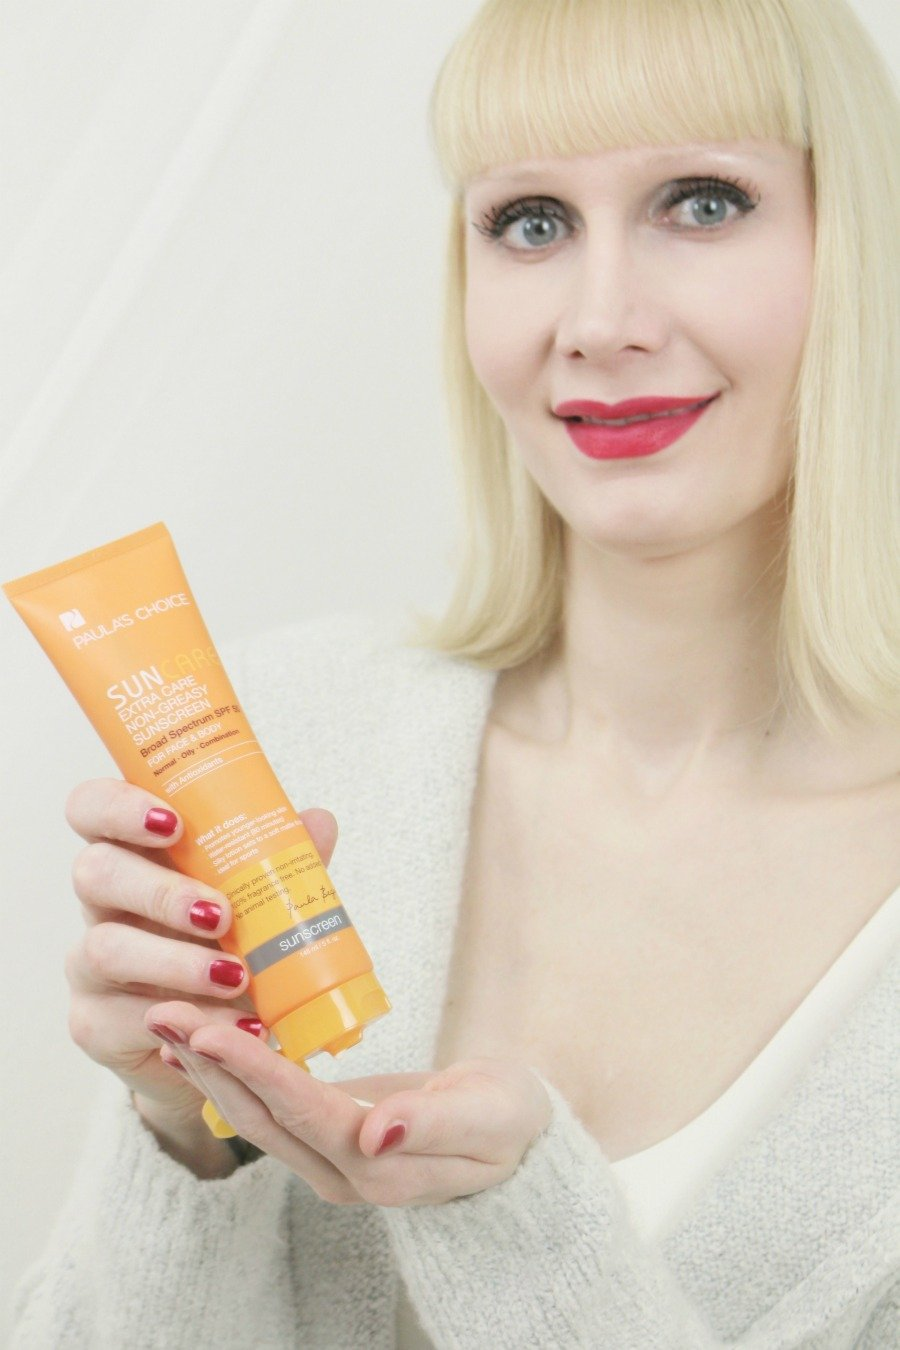 Was ist Anti Aging Pflege, Hautalterung verlangsamen, lichtbedingte Hautalterung, beste Anti Aging Gesichtspflege, Anti Aging Wirkstoffe, Anti-Aging Sonnencreme, Paula's Choice Sonnencreme Erfahrungen, Paula's Choice Extra Care Non-Greasy Sunscreen Erfahrungen, Sonnencreme gegen Falten, Sonnencreme gegen Hautalterung, Anti-Aging Produkte mit 20, Anti Aging Beauty Blogger, Super Twins Blog, Super Twins Annalena und Magdalena